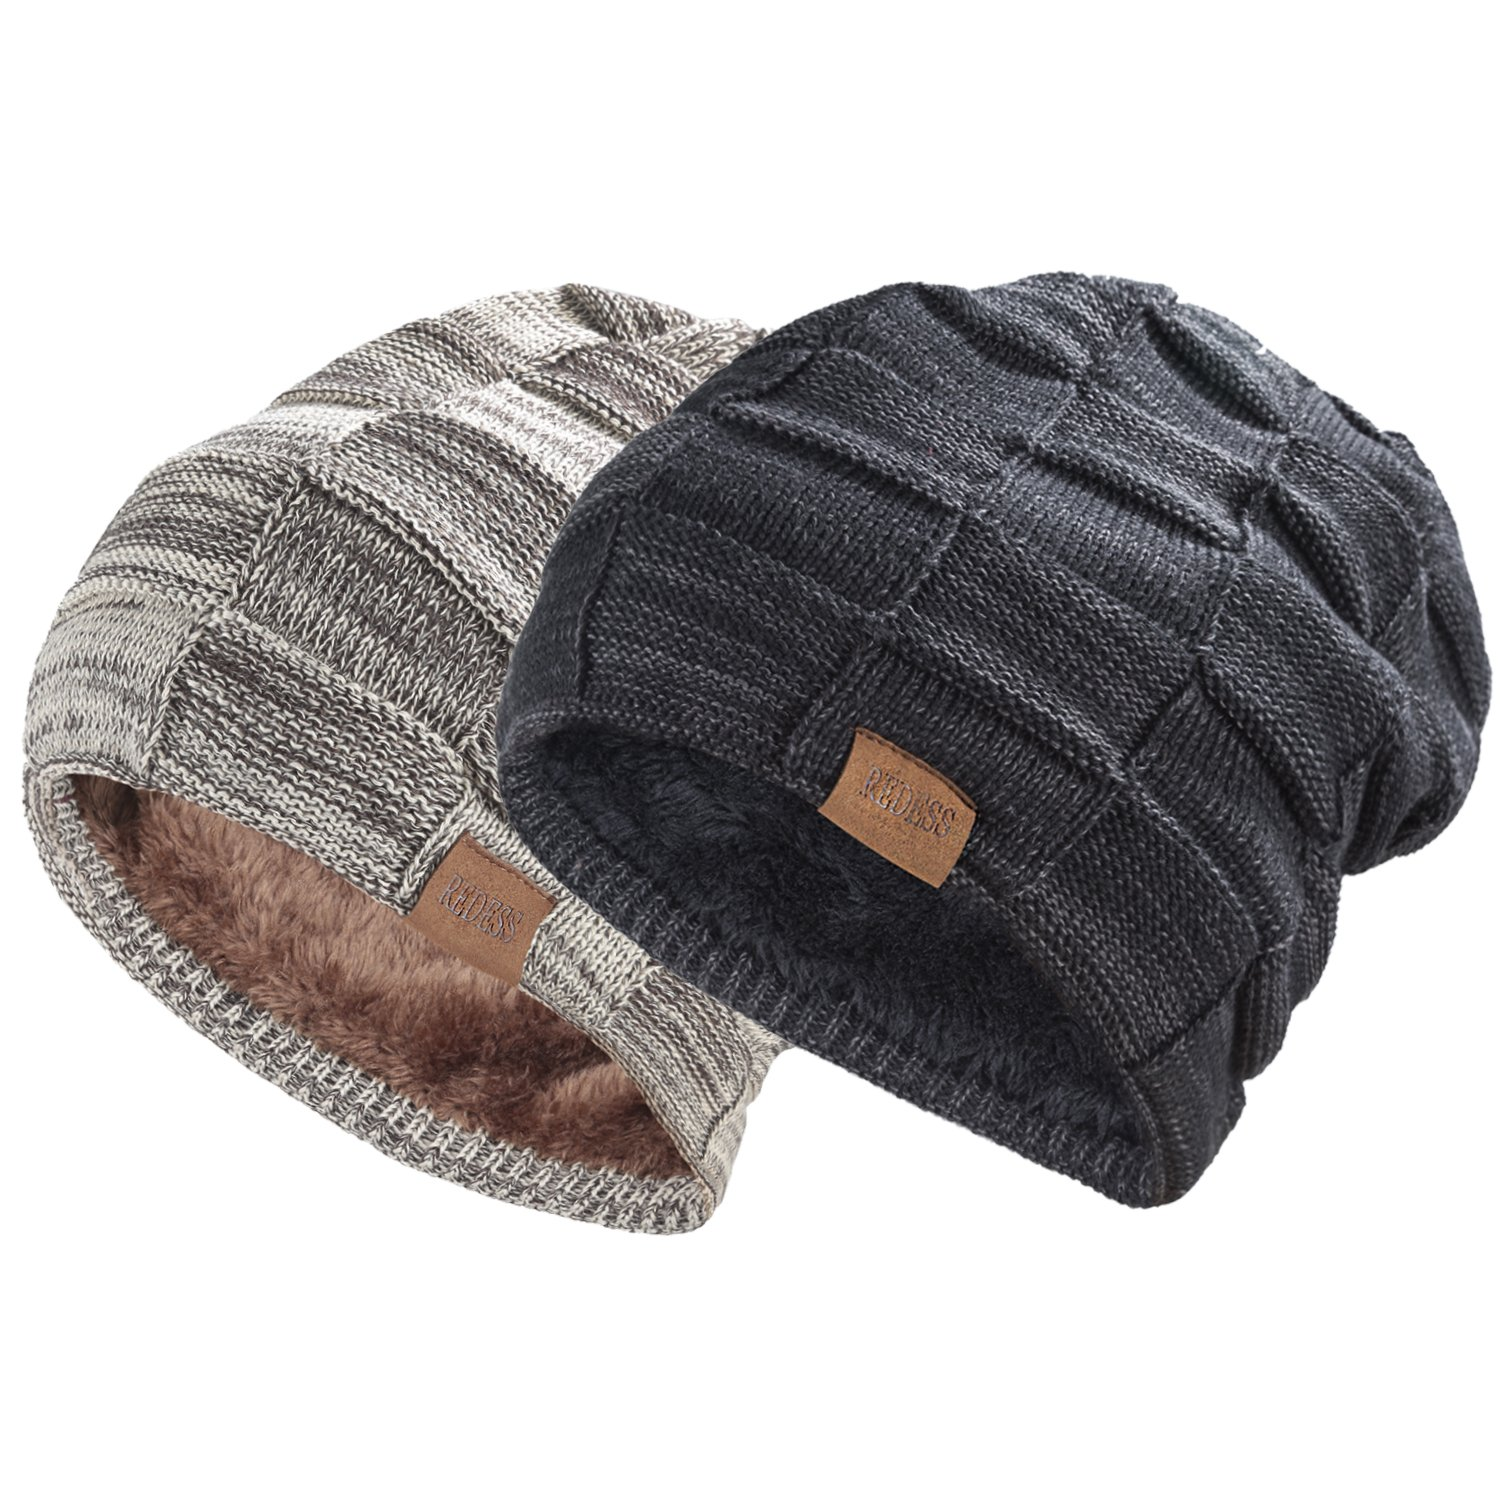 REDESS Beanie Hat for Men and Women Winter Warm Hats Knit Slouchy Thick  Skull Cap product f91863deb729